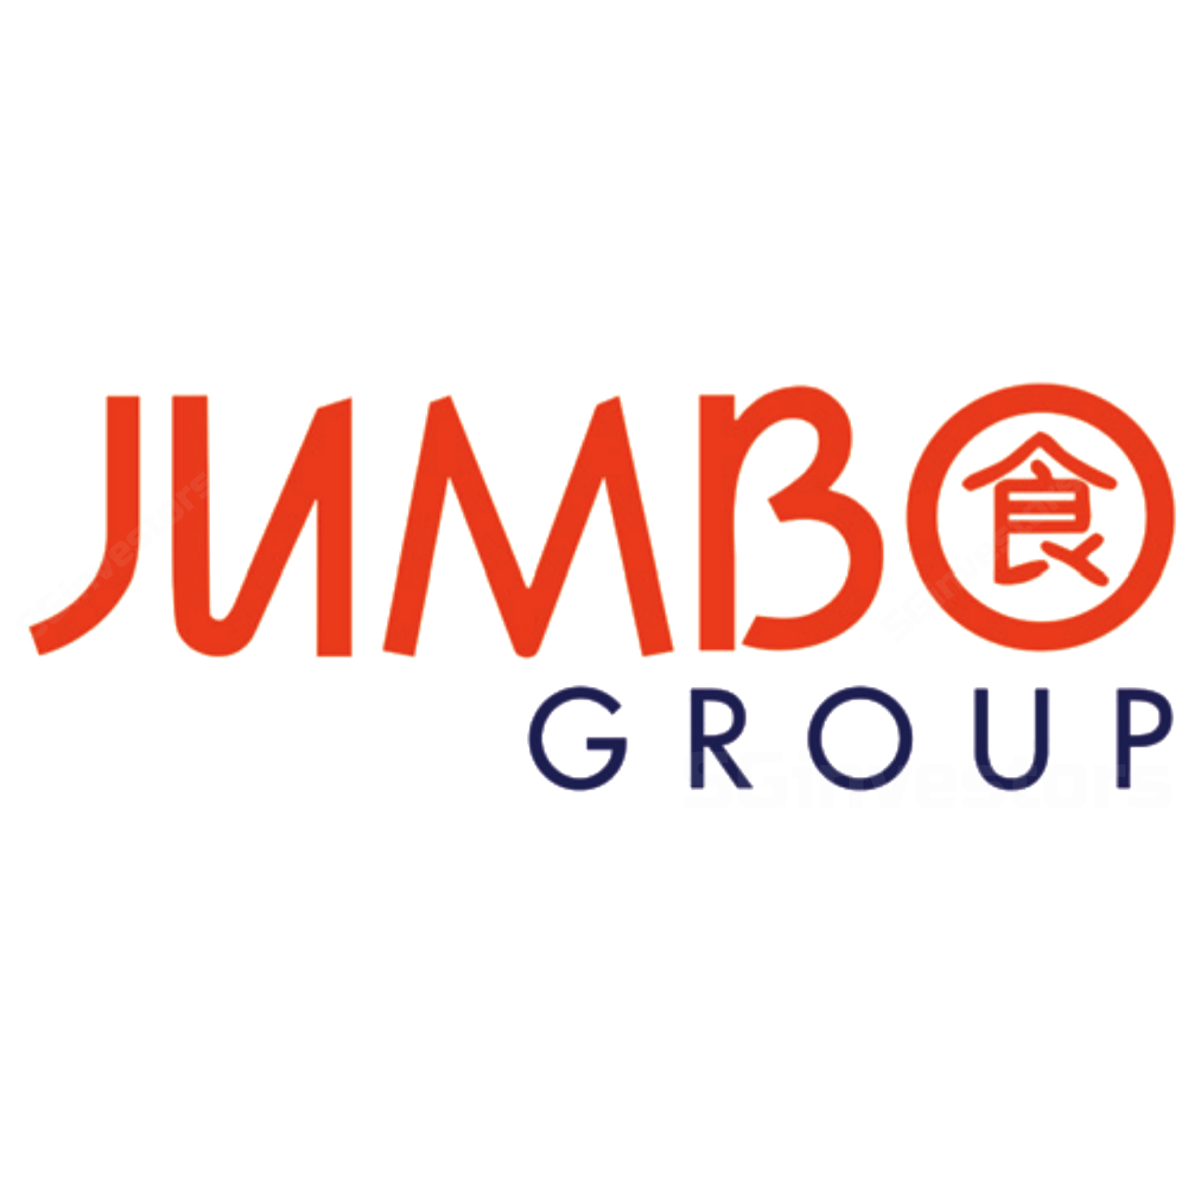 Jumbo Group (JUMBO SP) - DBS Vickers 2018-02-15: Earnings Affected By Higher Costs